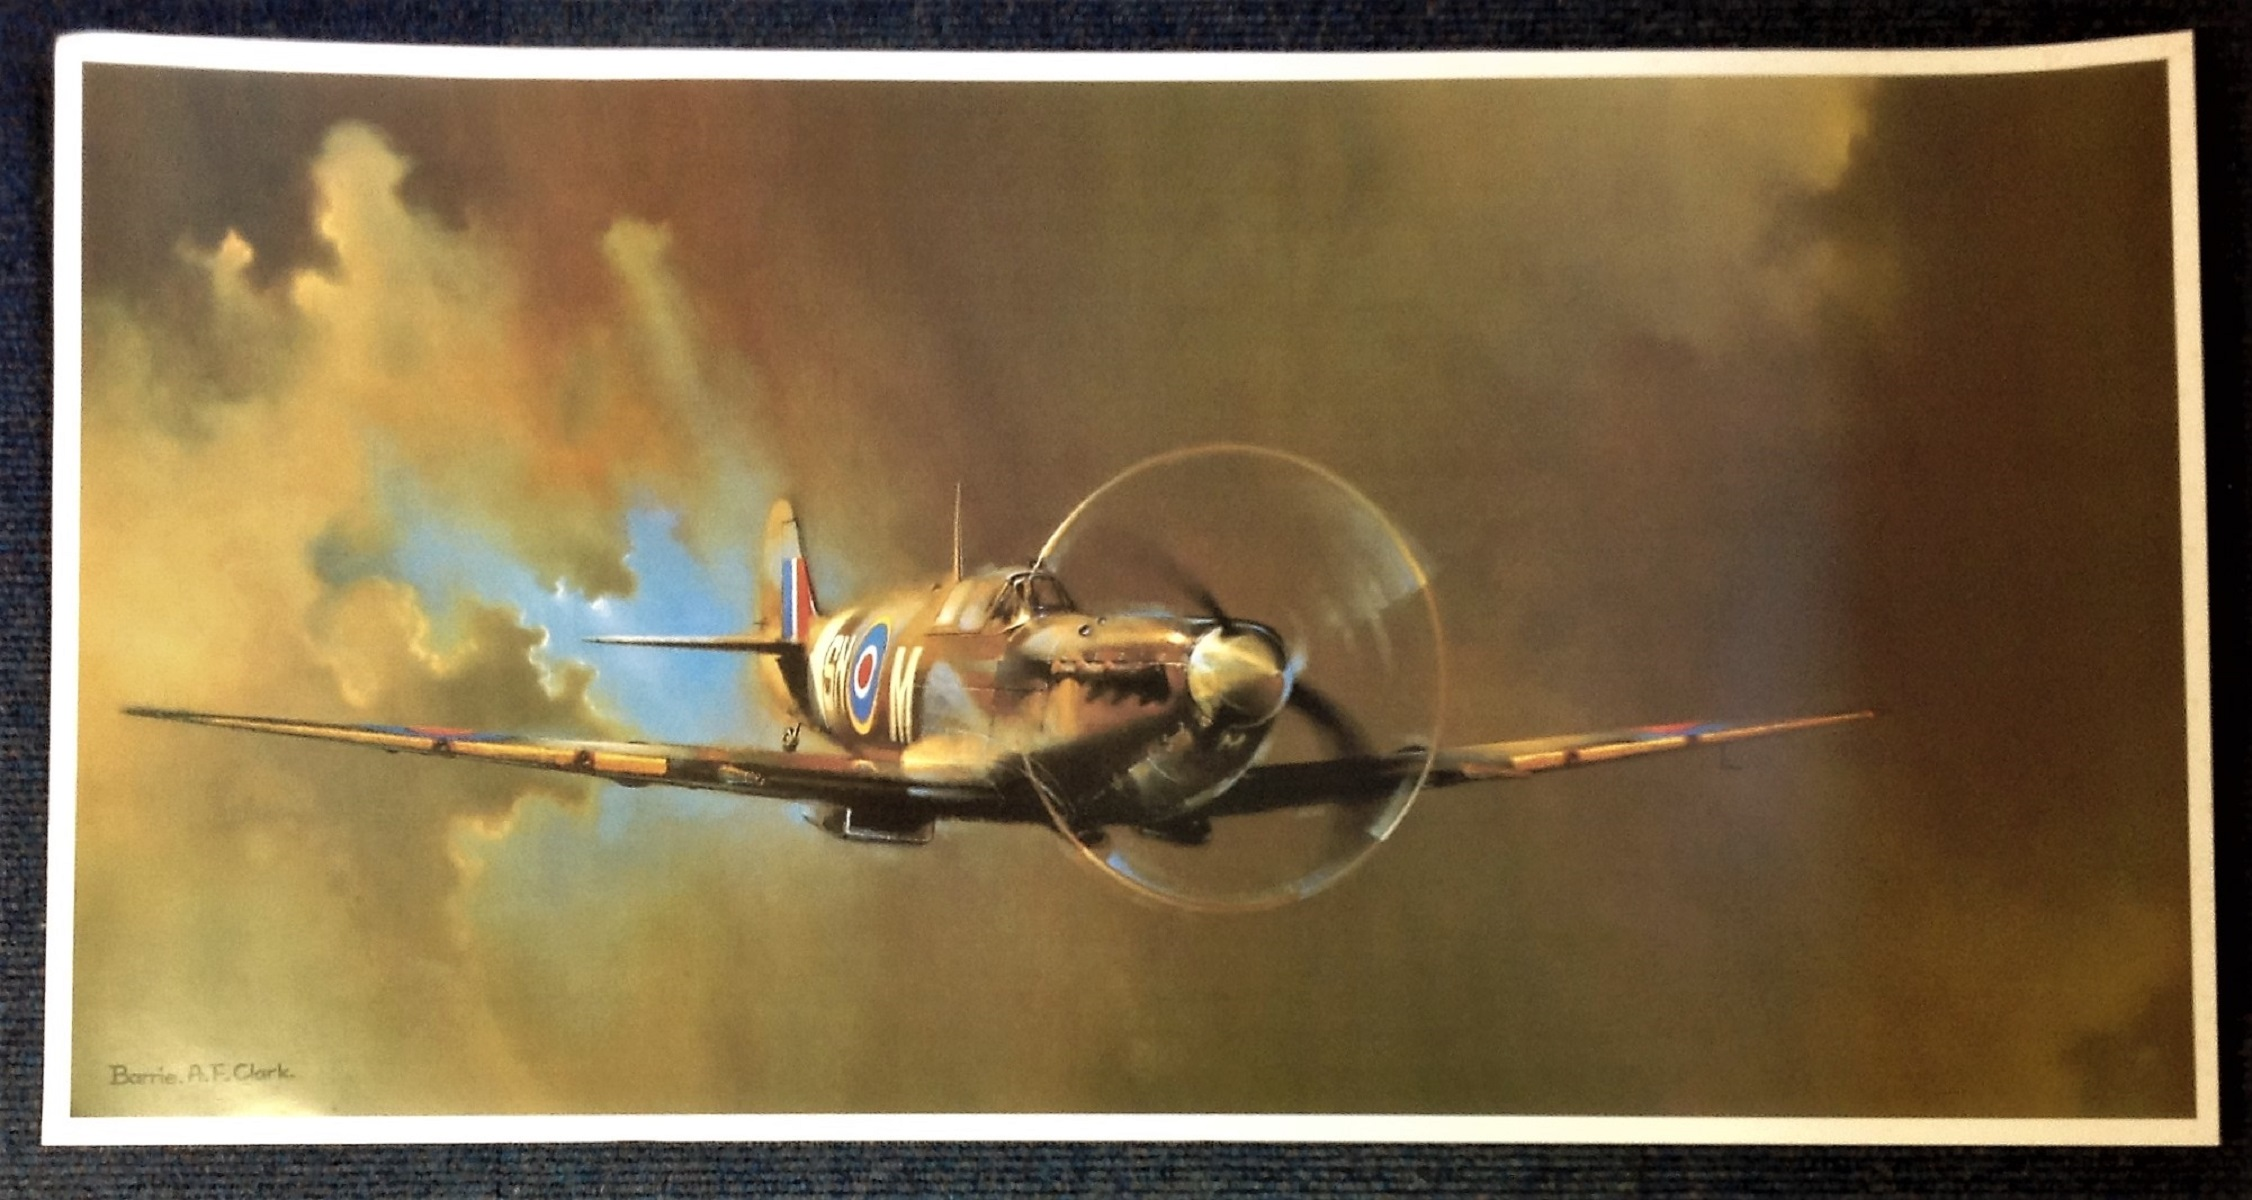 Battle of Britain 36X19 print picturing a Spitfire in flight by the artist Barrie. A. F. Clark. Good